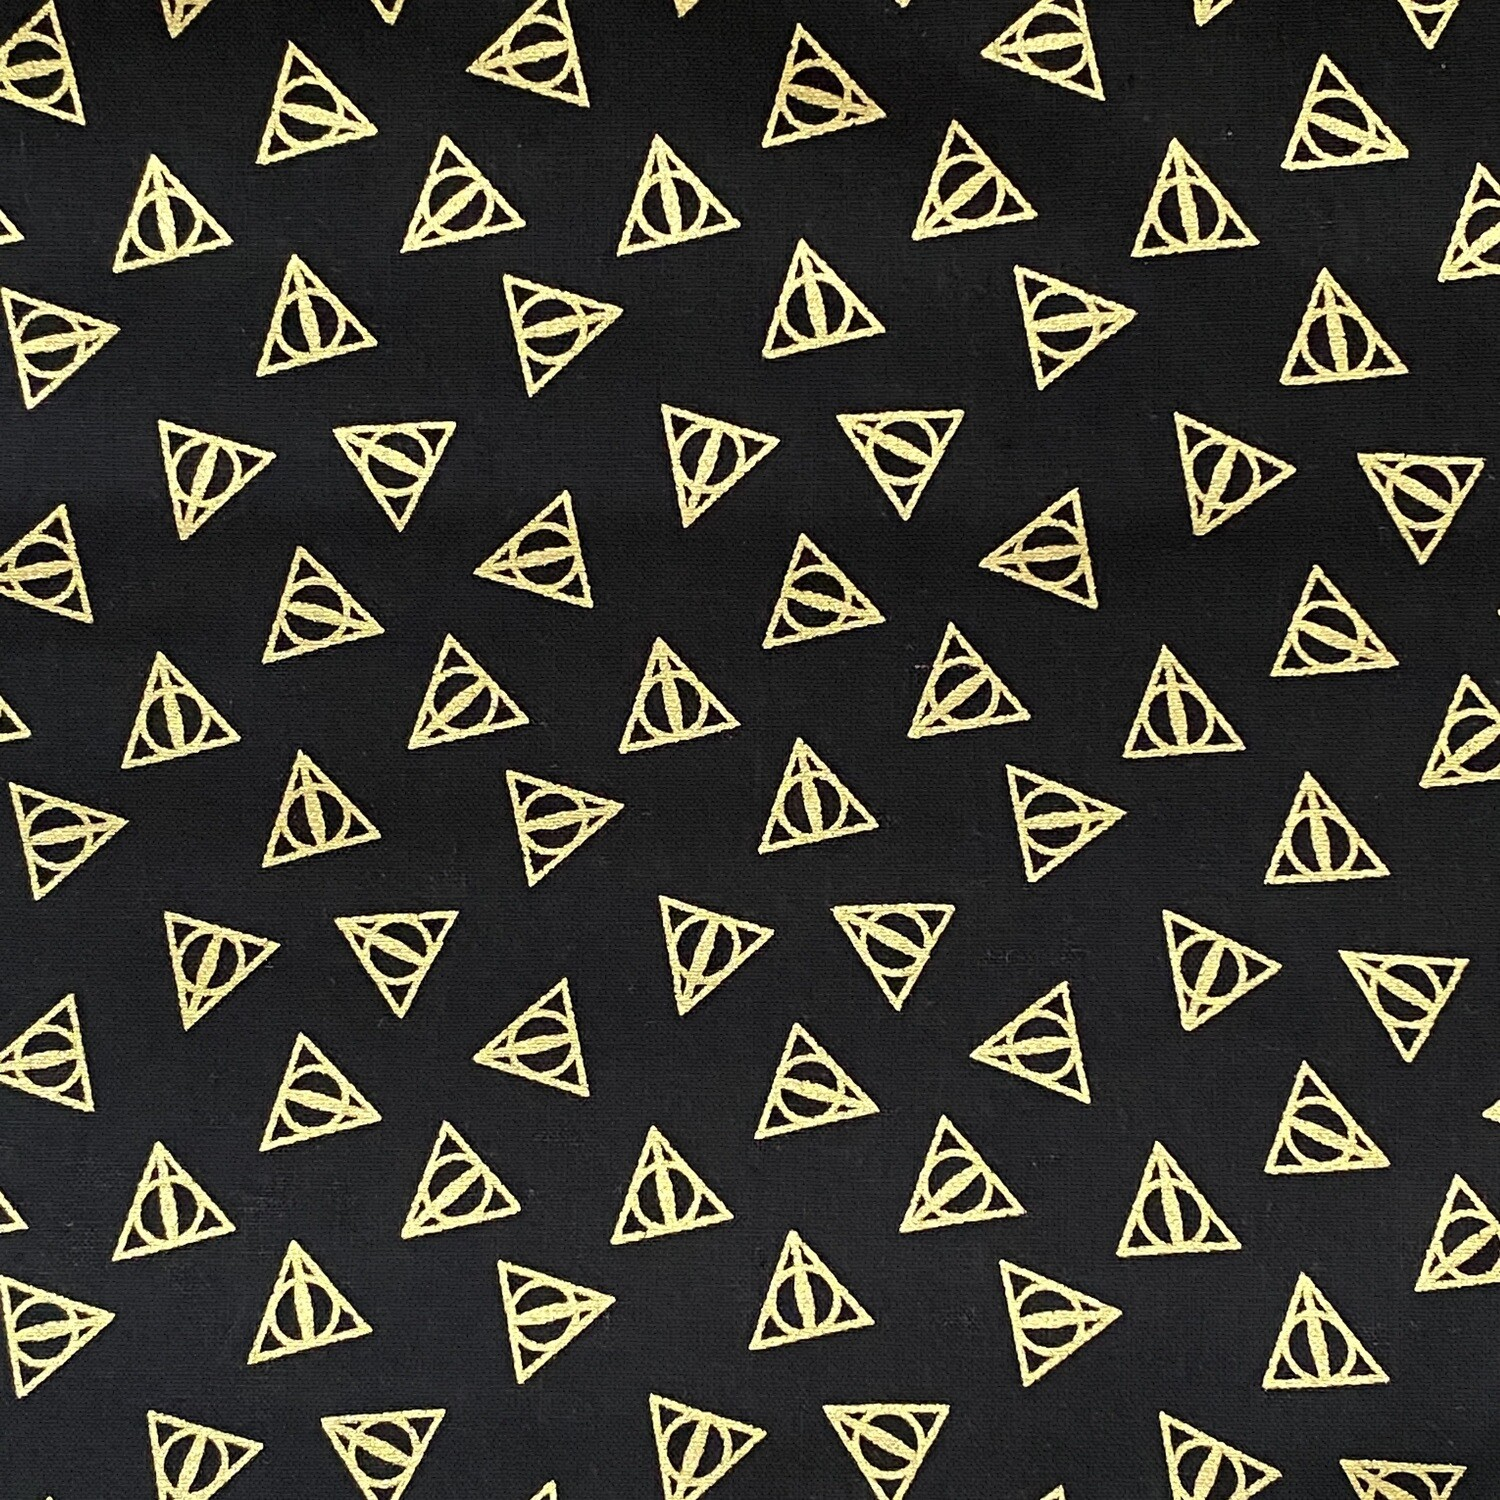 EasyFit Harry Potter Deathly Hallows Reusable Cloth Face Mask